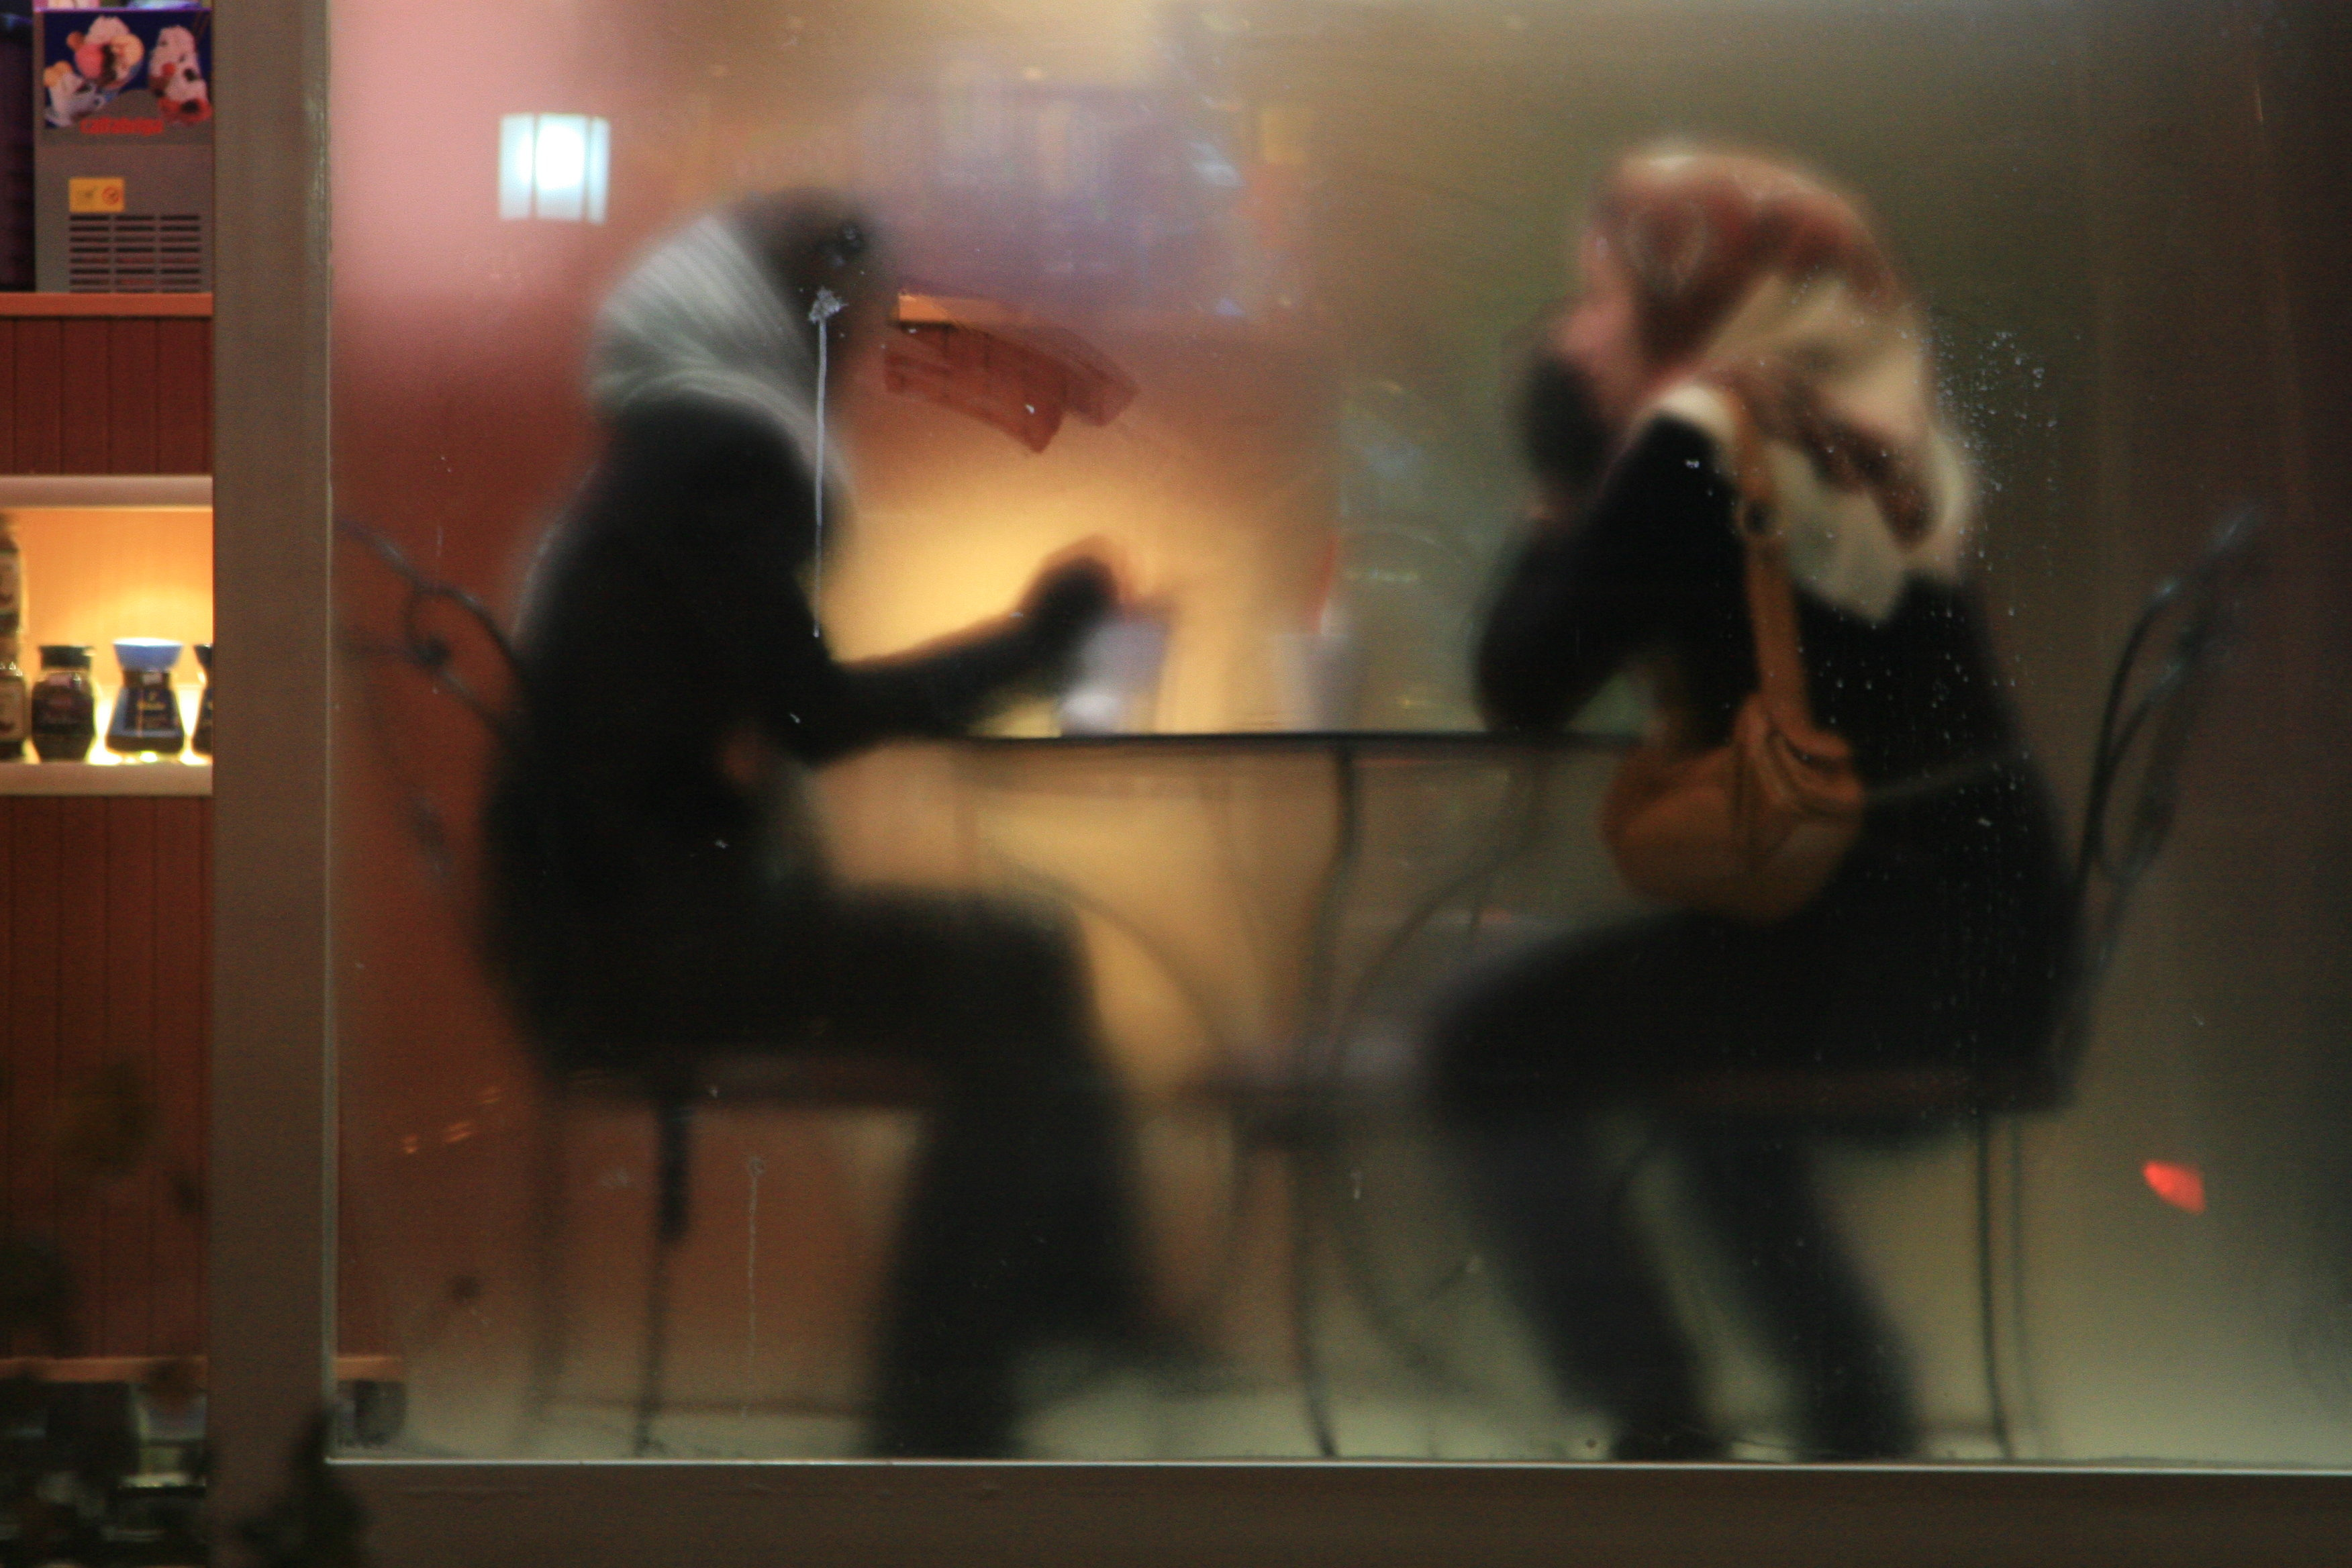 Two women wearing full black clothing and a headscarf sitting in a cafe. The photo is taken from other side of a glass door, such that they are blurred.